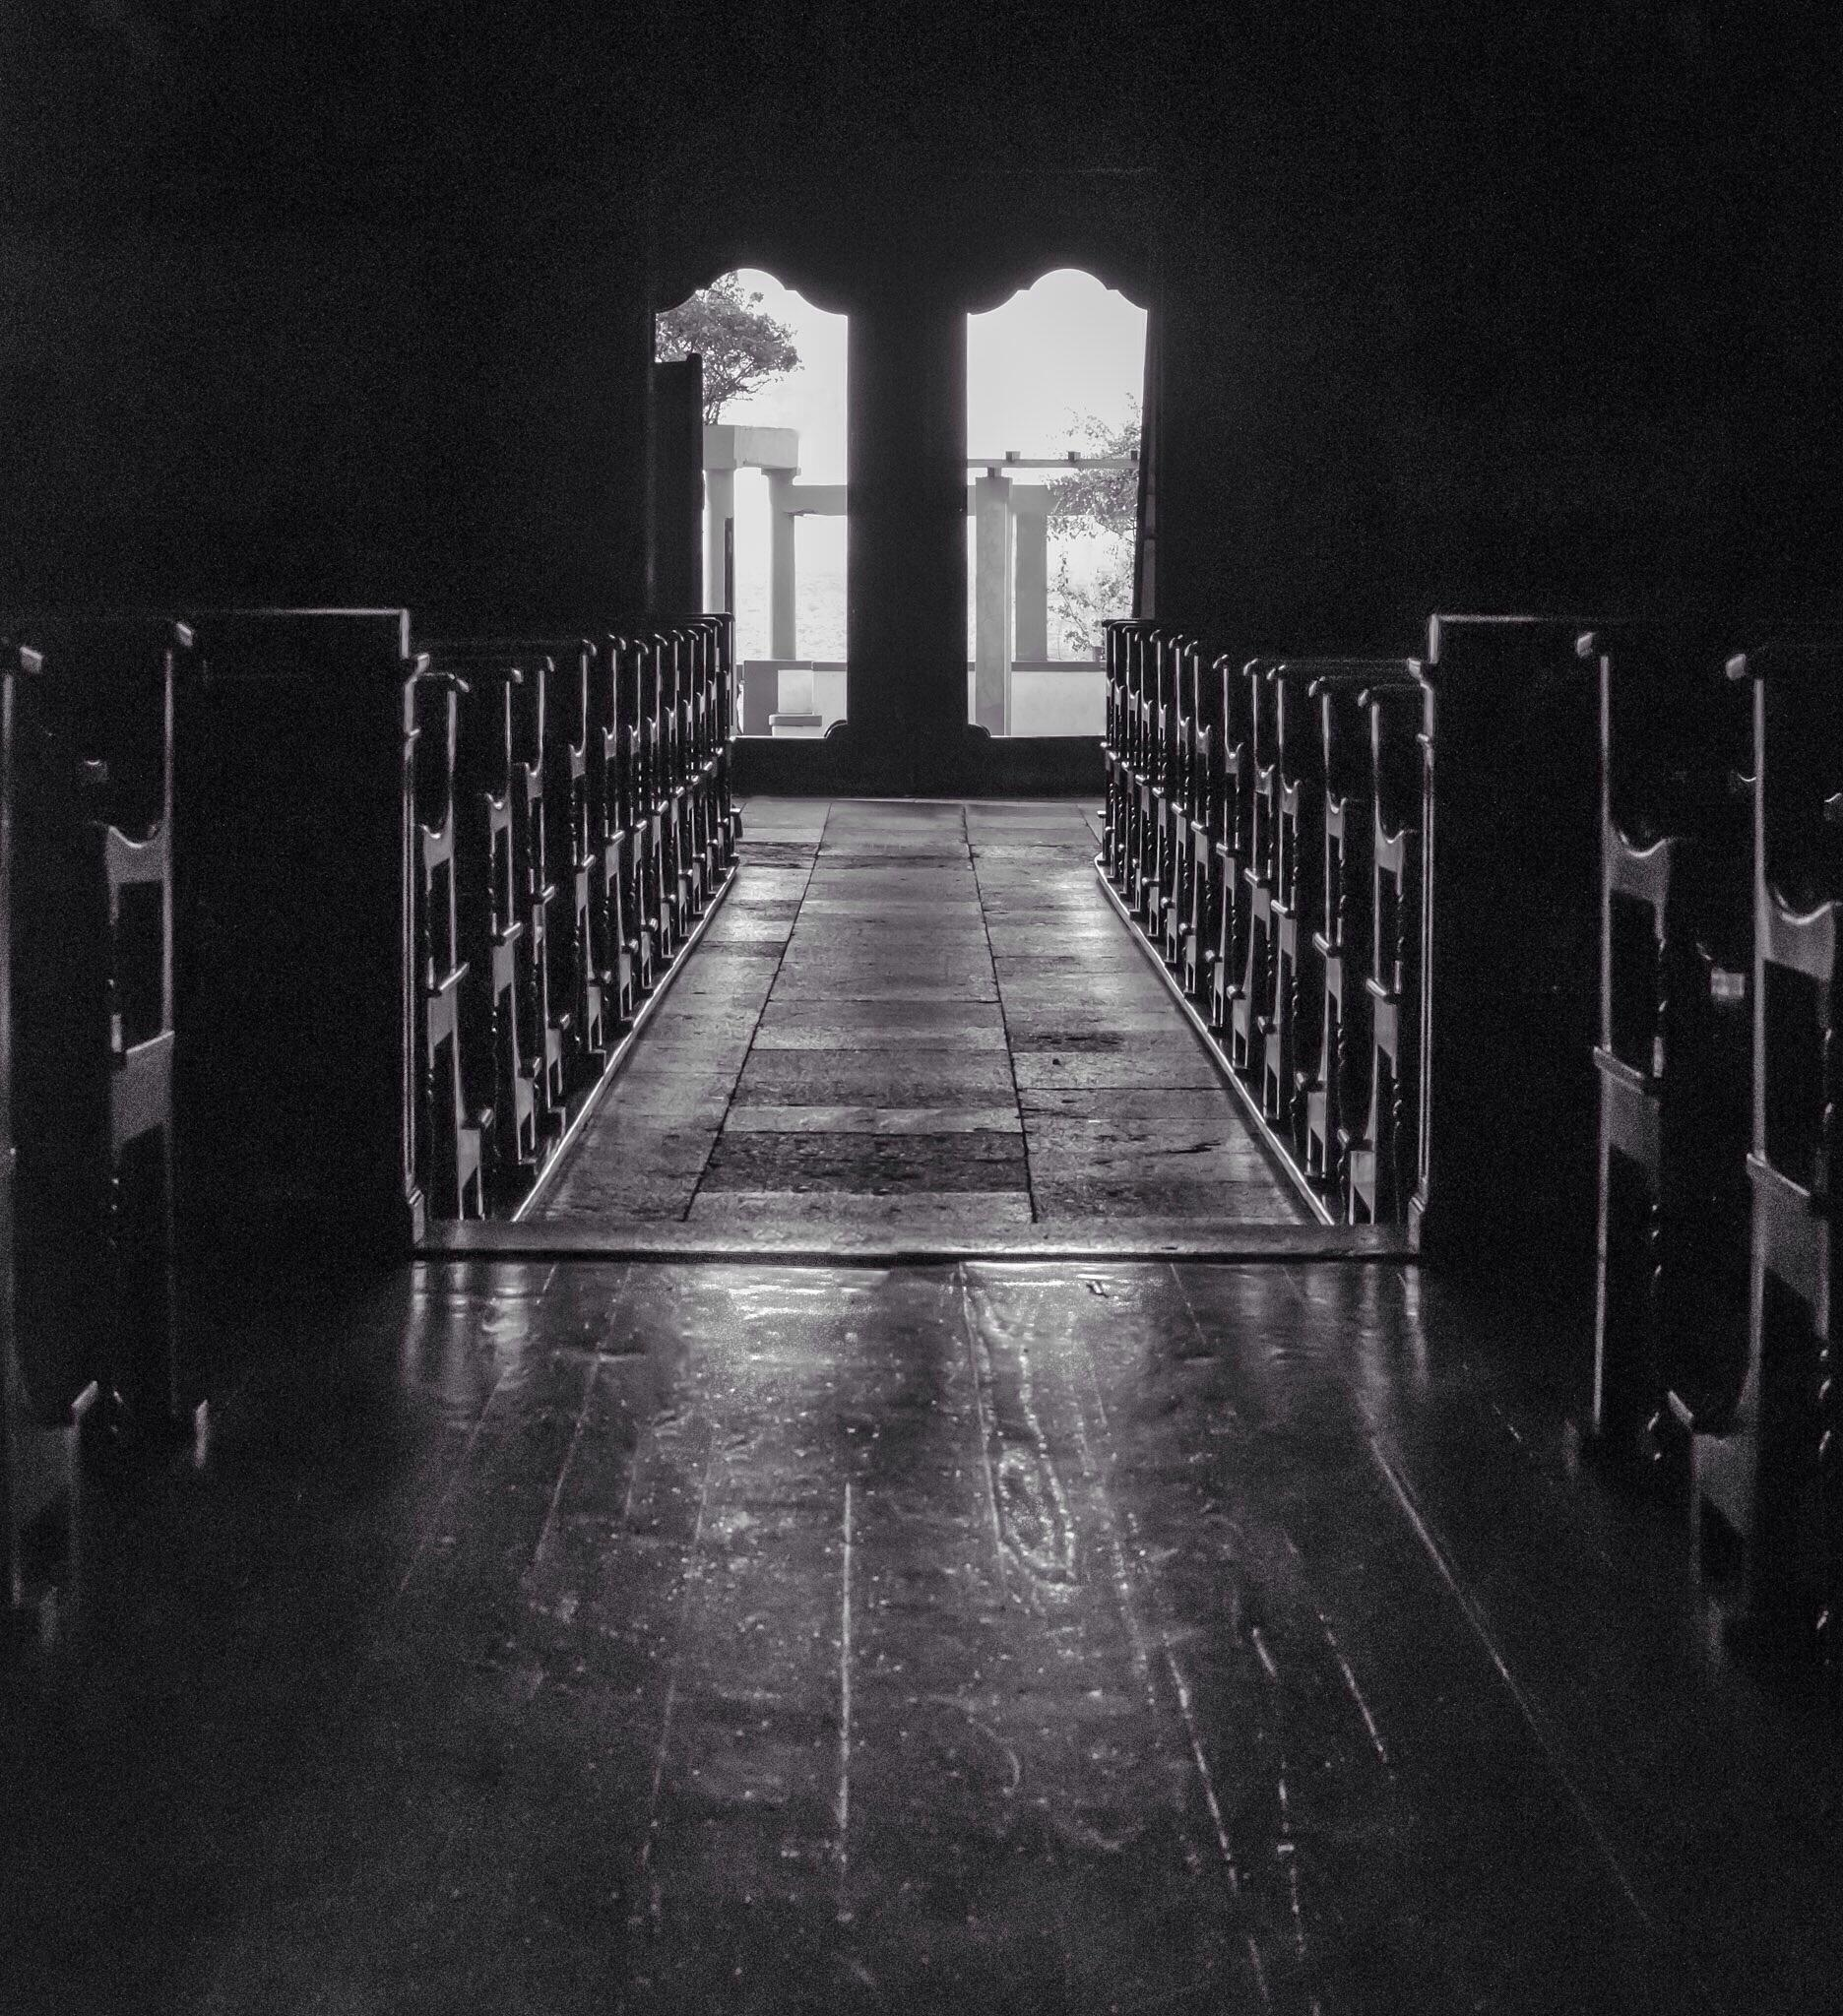 Church Looking out. by Norman3384